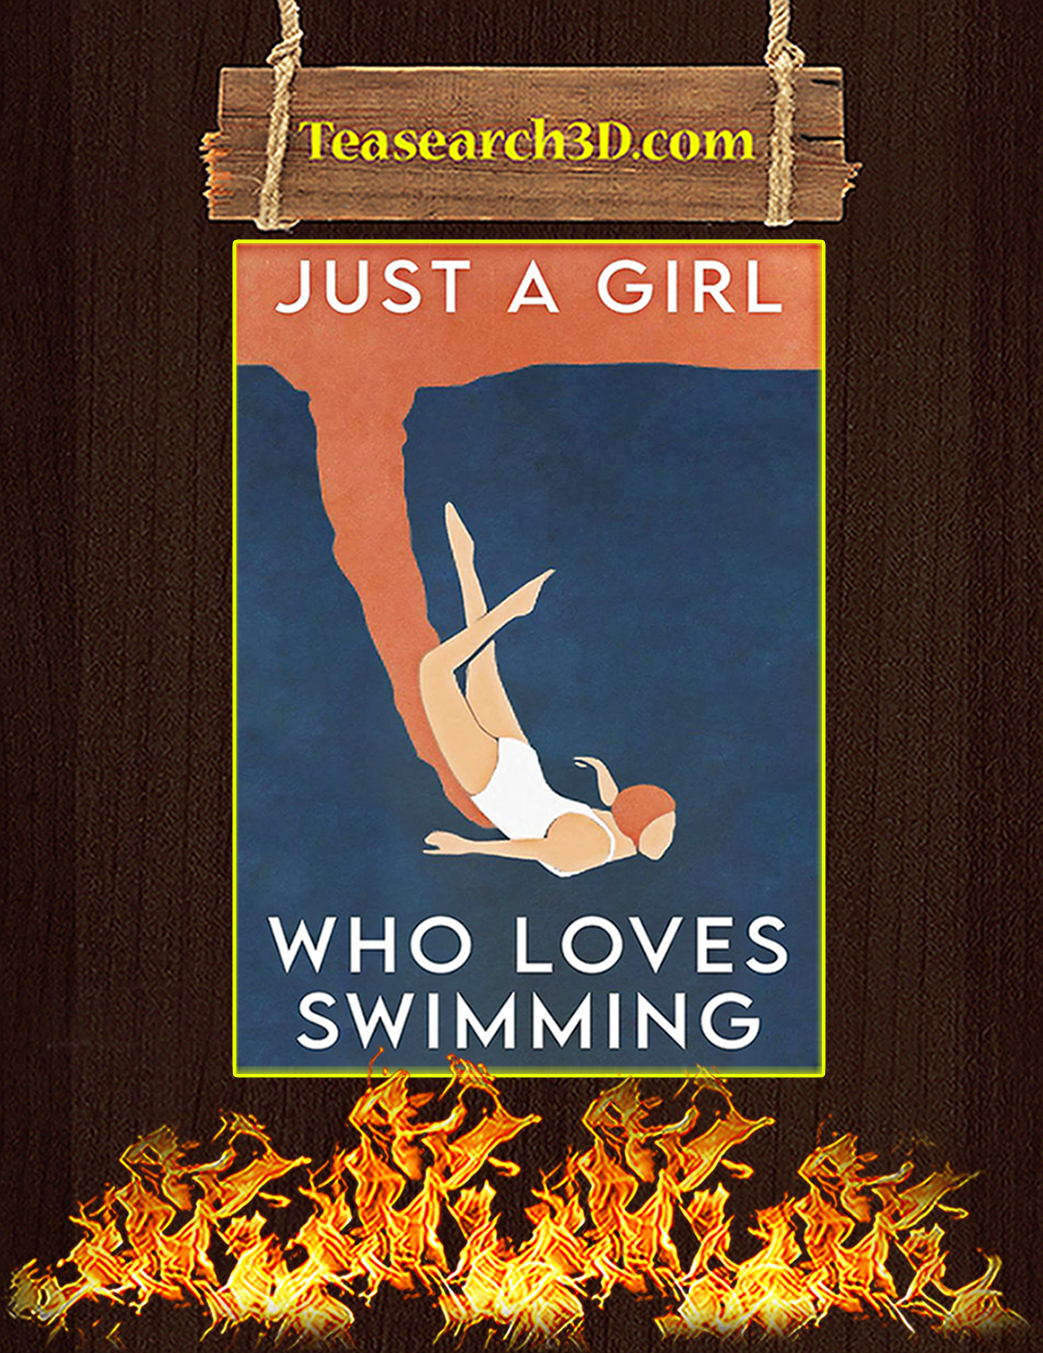 Just a girl who loves swimming poster A1